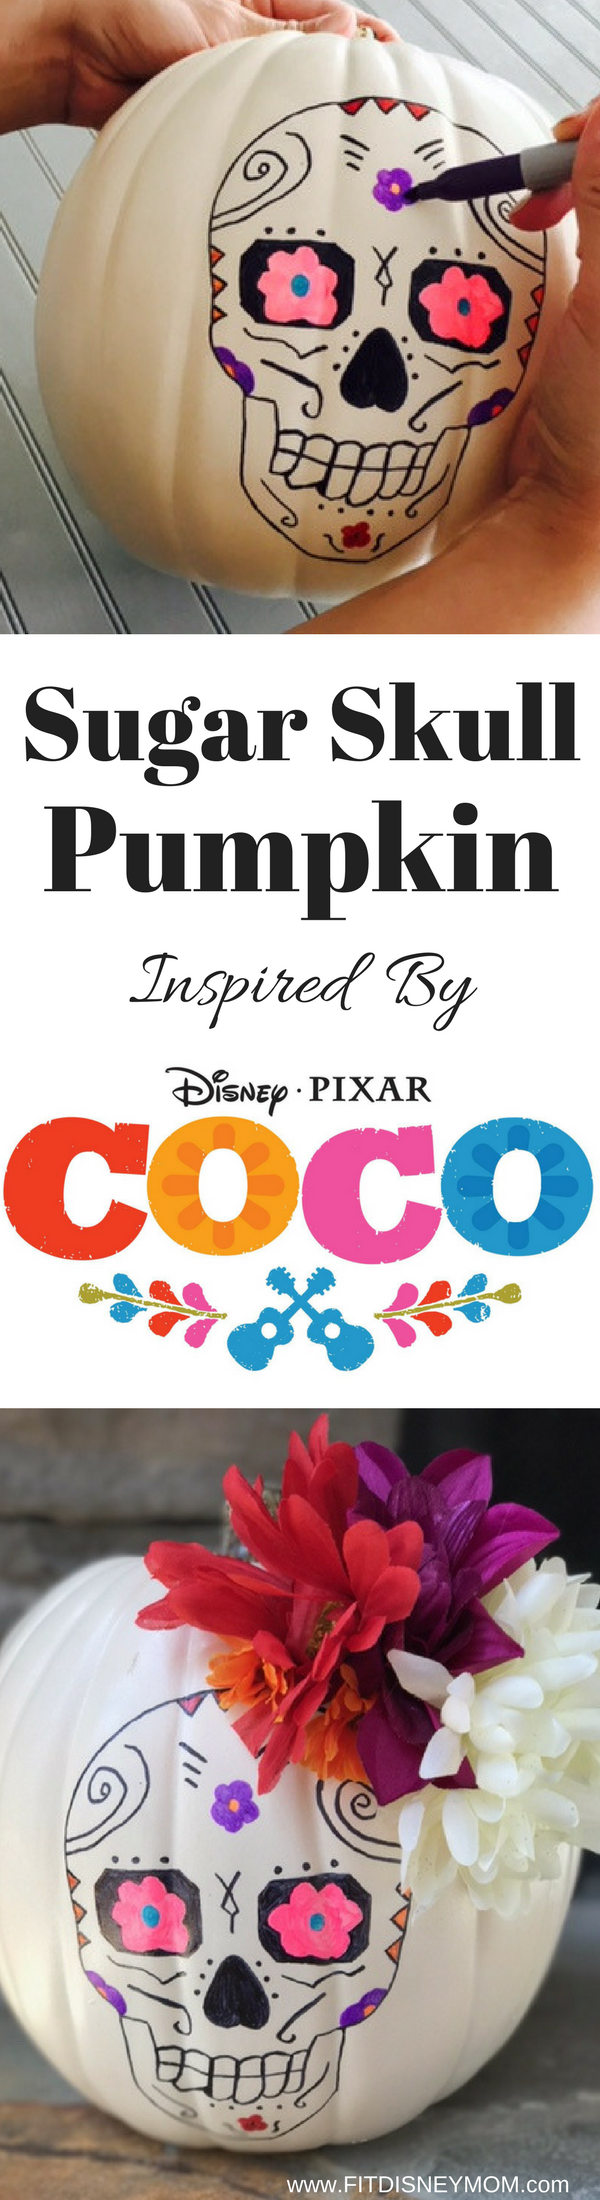 Sugar Skull Pumpkin, Sugar Skull Pumpkin Craft, Sugar Skull Craft, Sugar Skulls, Disney Blogger, Disney Pixar COCO, COCO Craft